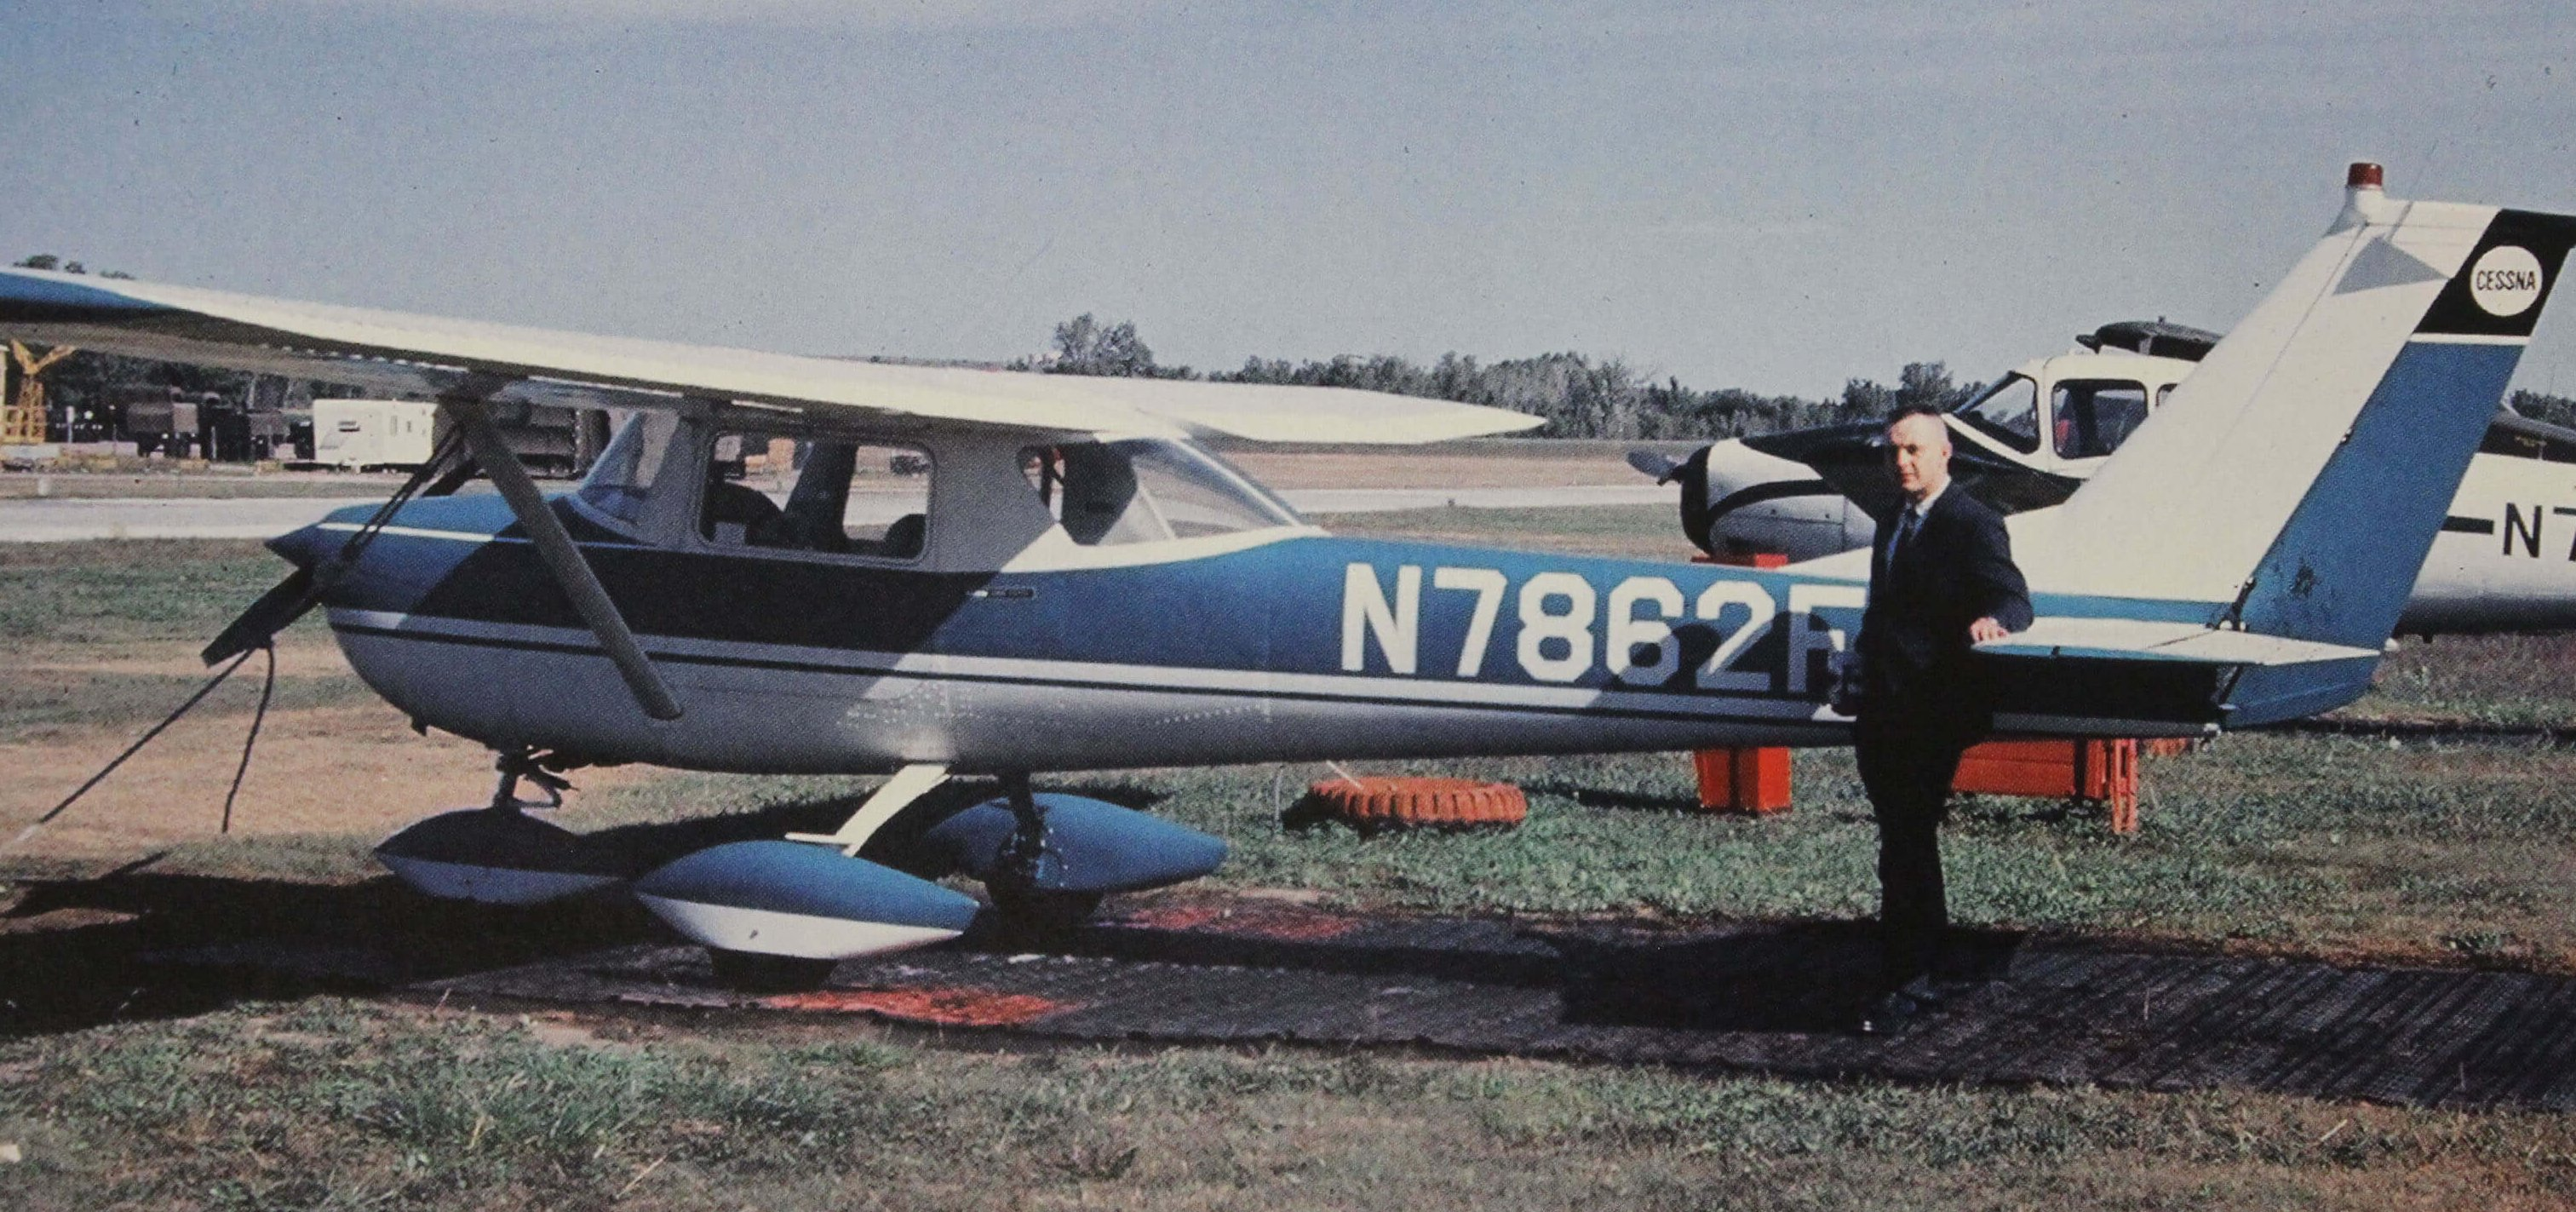 """A young man in a suit standing near the tail of a small plane with the text """"N7868F"""" on its side."""